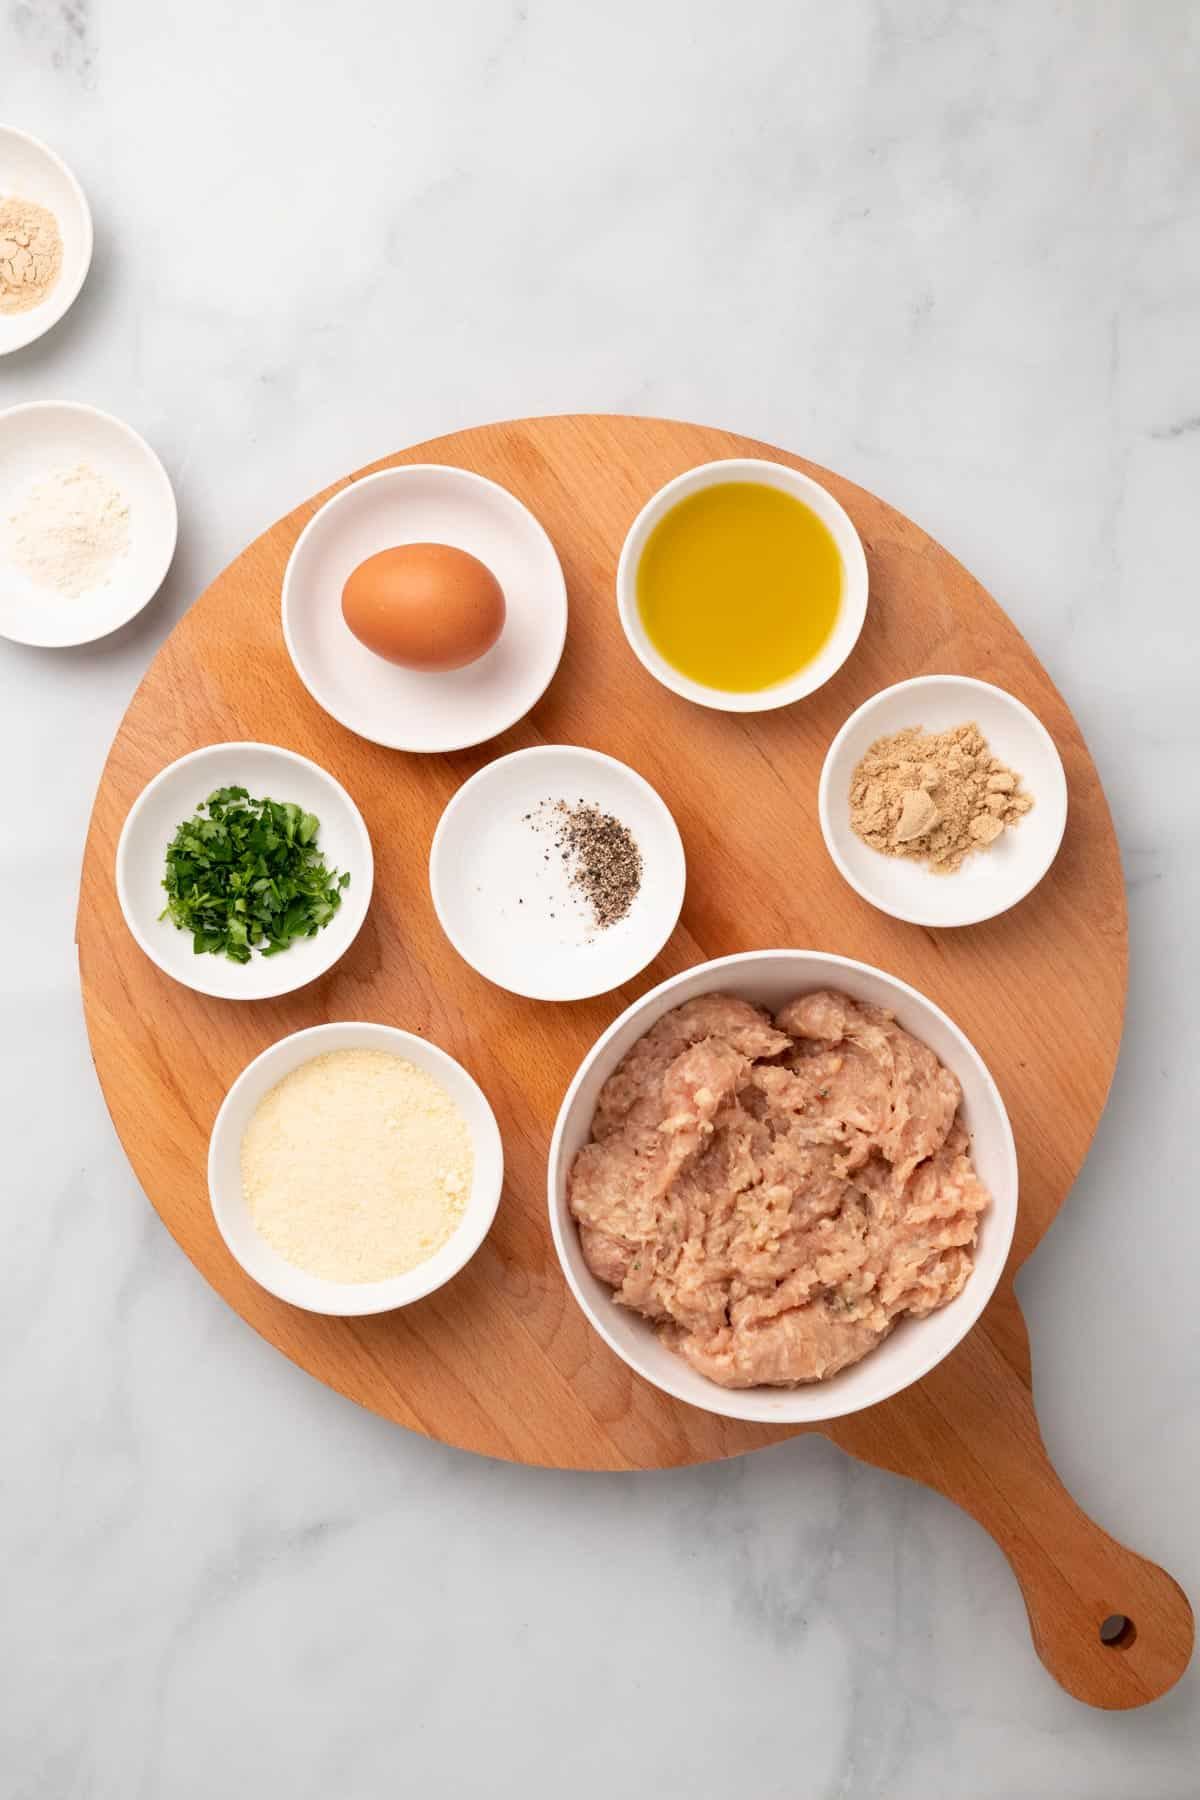 Ingredients for meatballs in separate ramekins and dishes, as seen from above